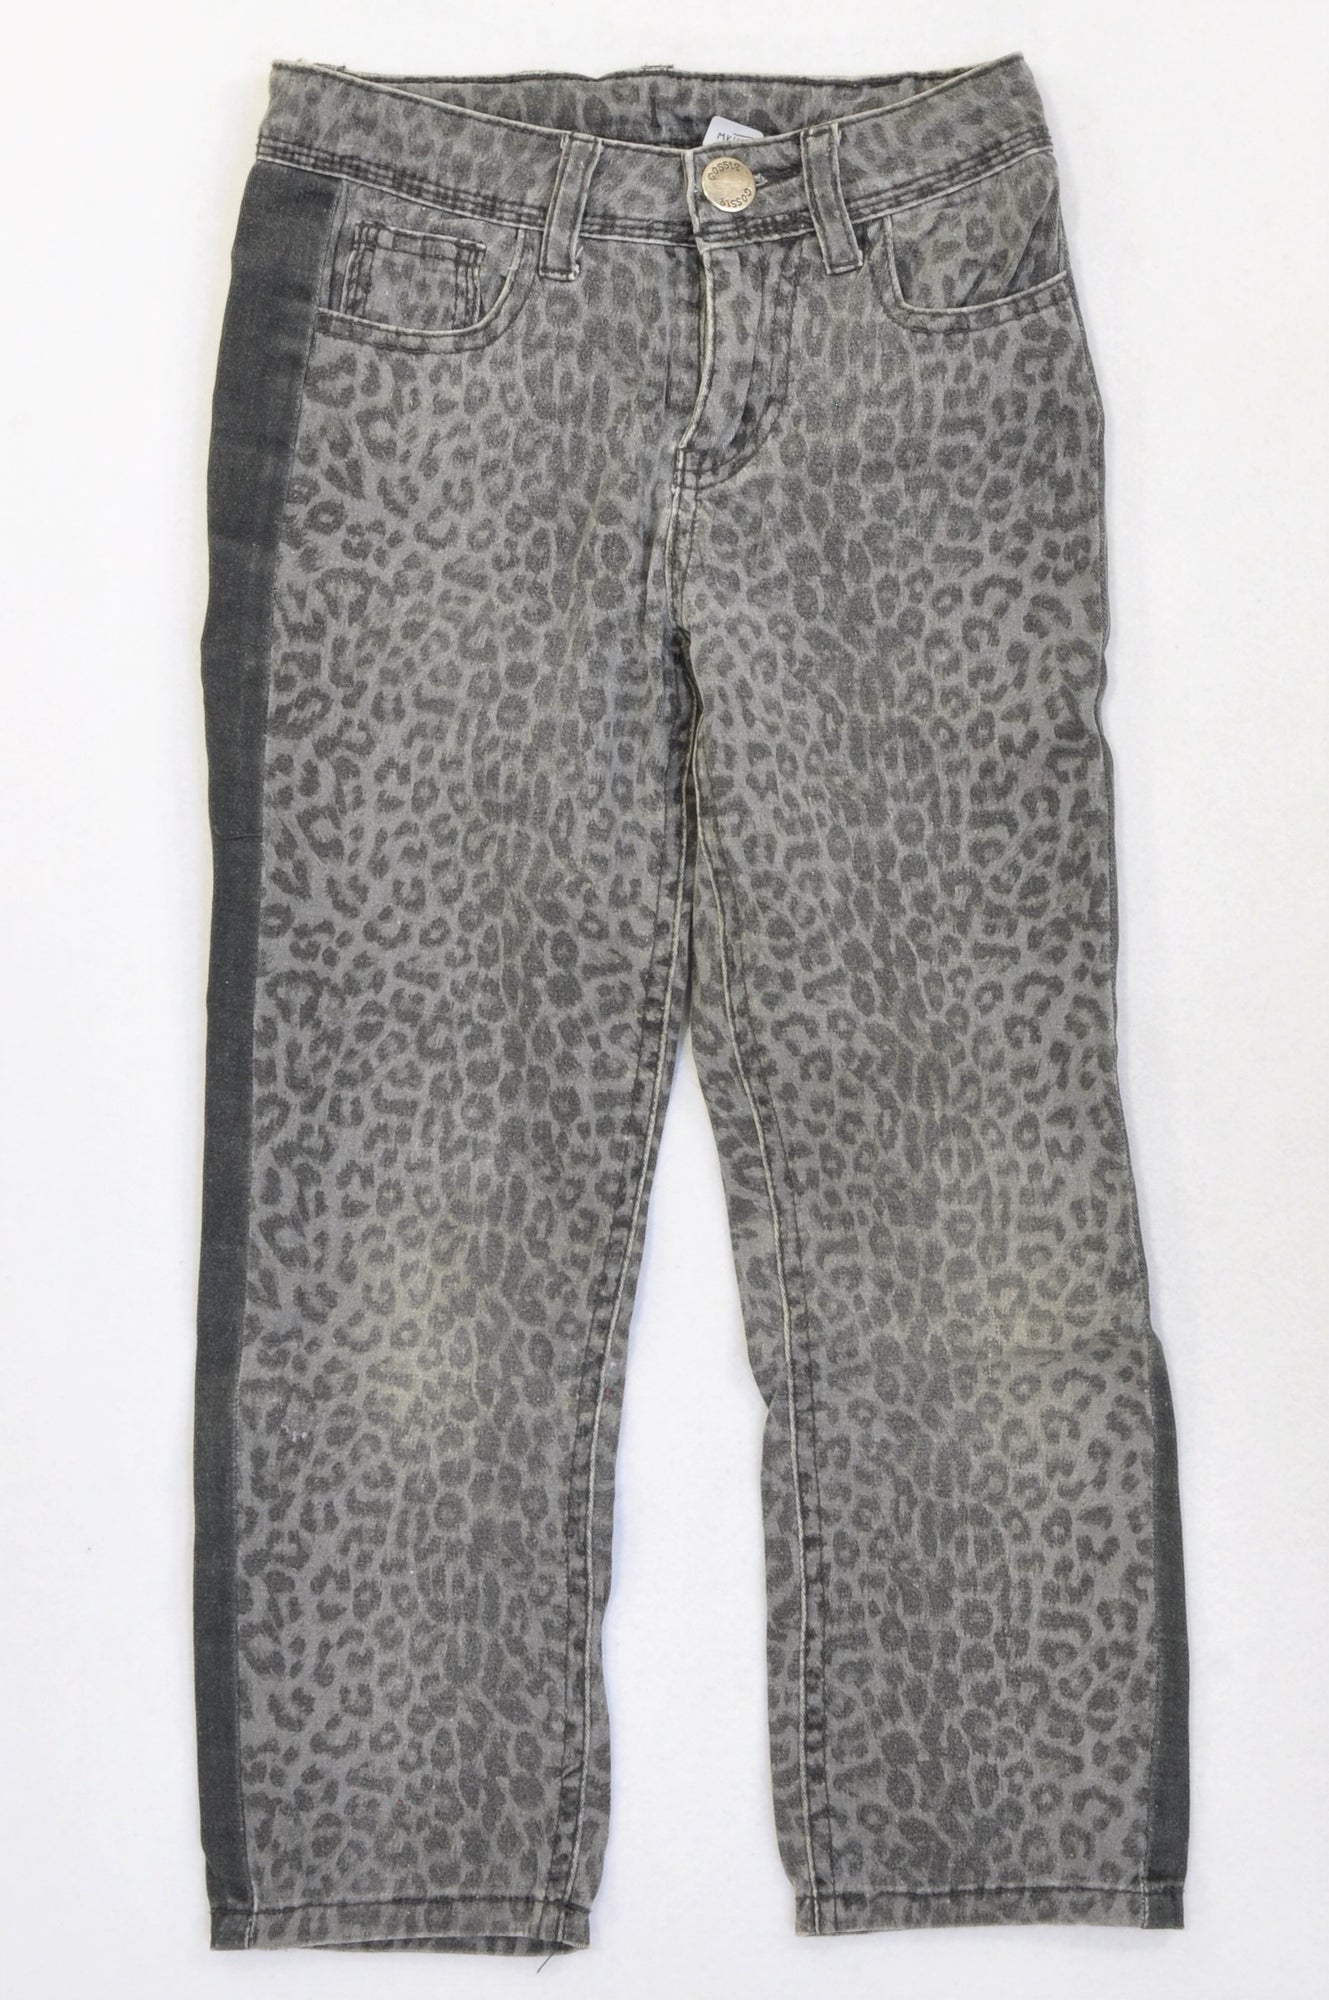 Gossip Dark Grey Animal Print Straight Leg Jeans Girls 5-6 years